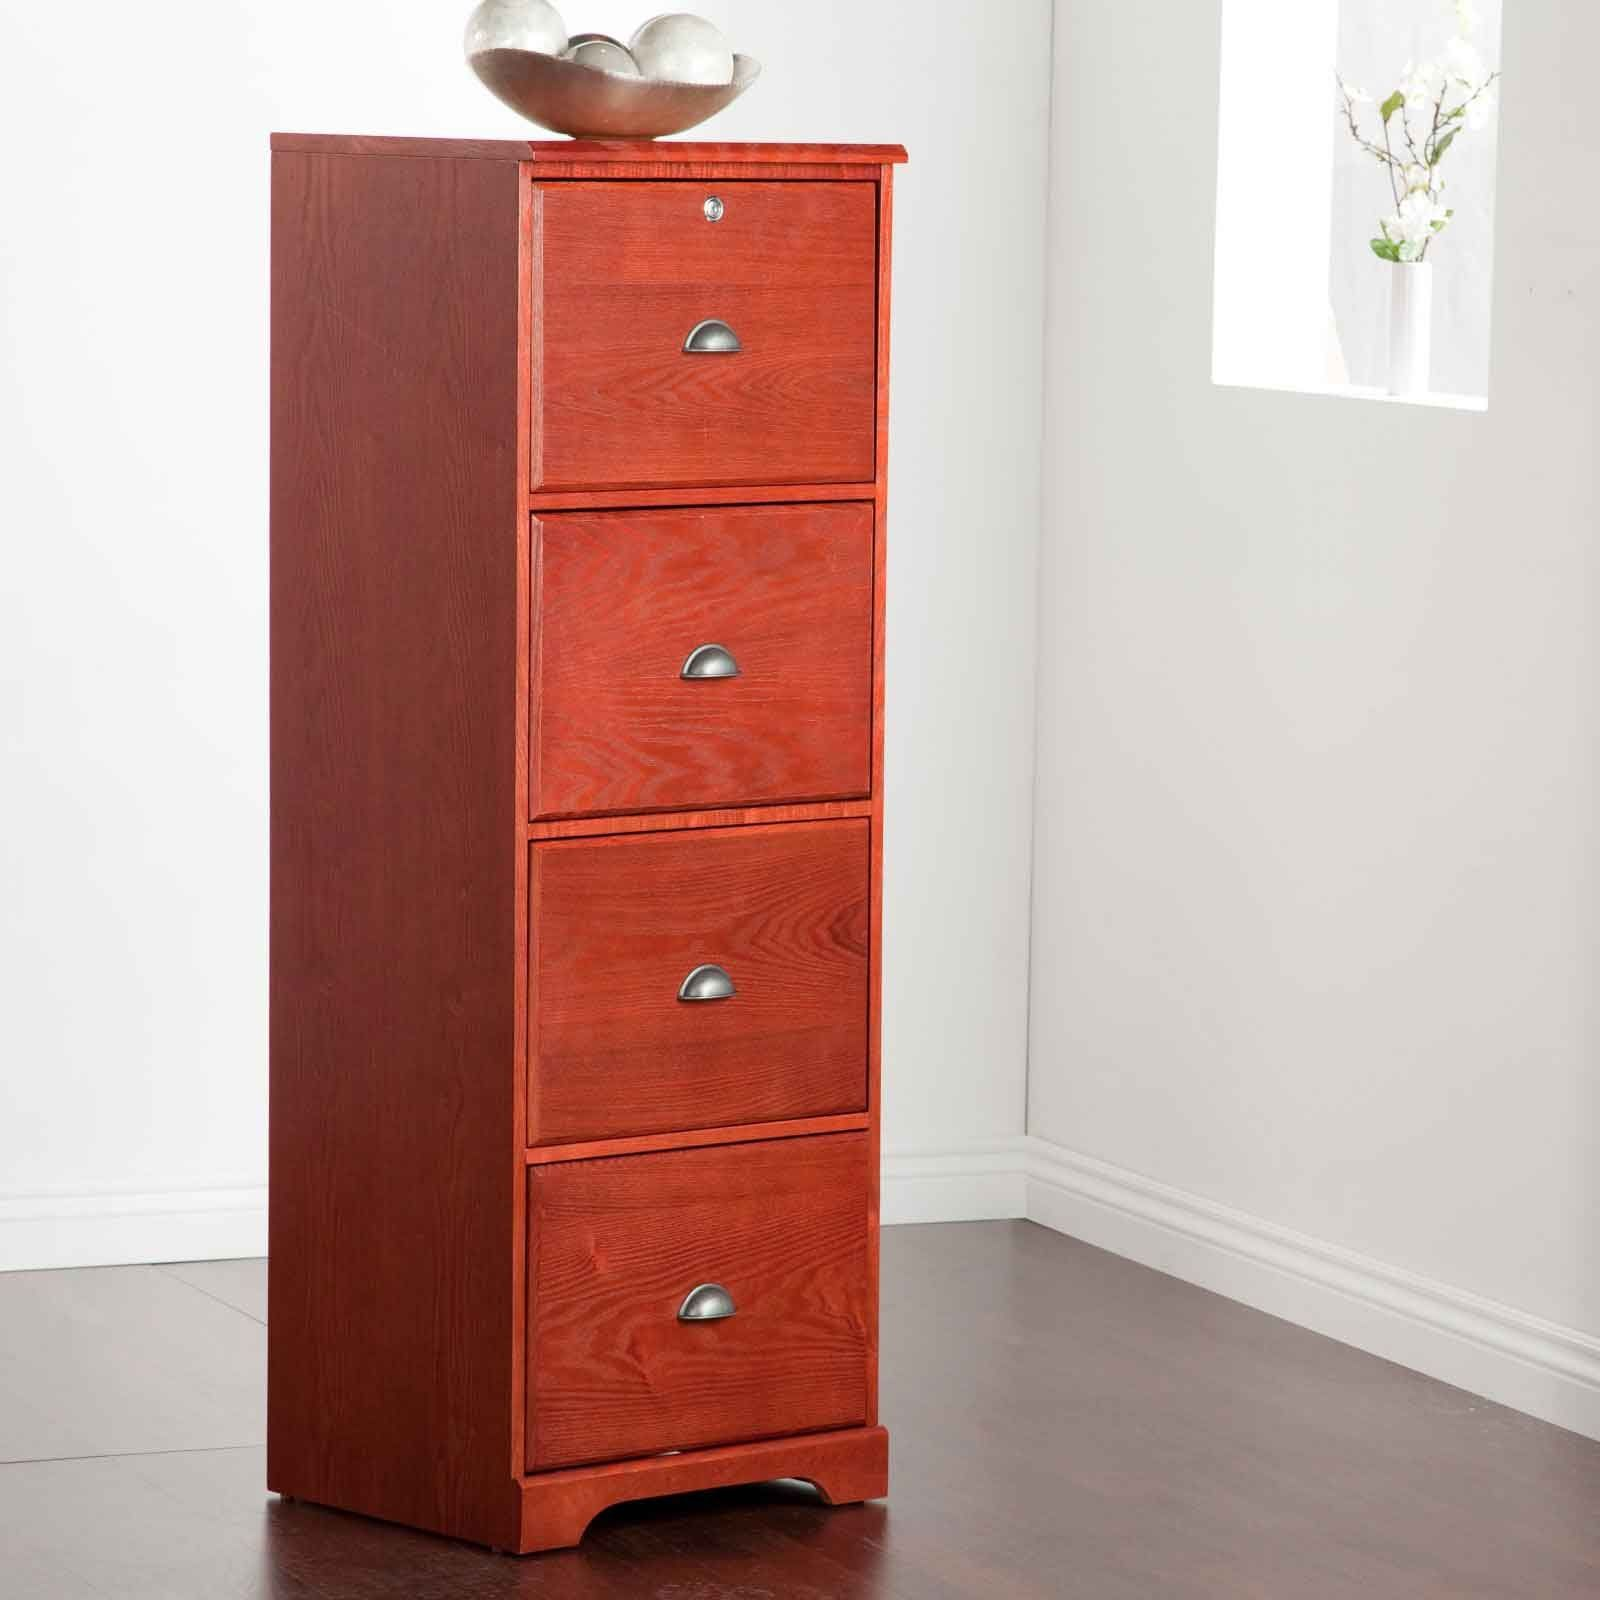 4 Drawer Wood Filing Cabinets Is An Excellent Improvement For Your Home  Office Or Perhaps Office Environment.